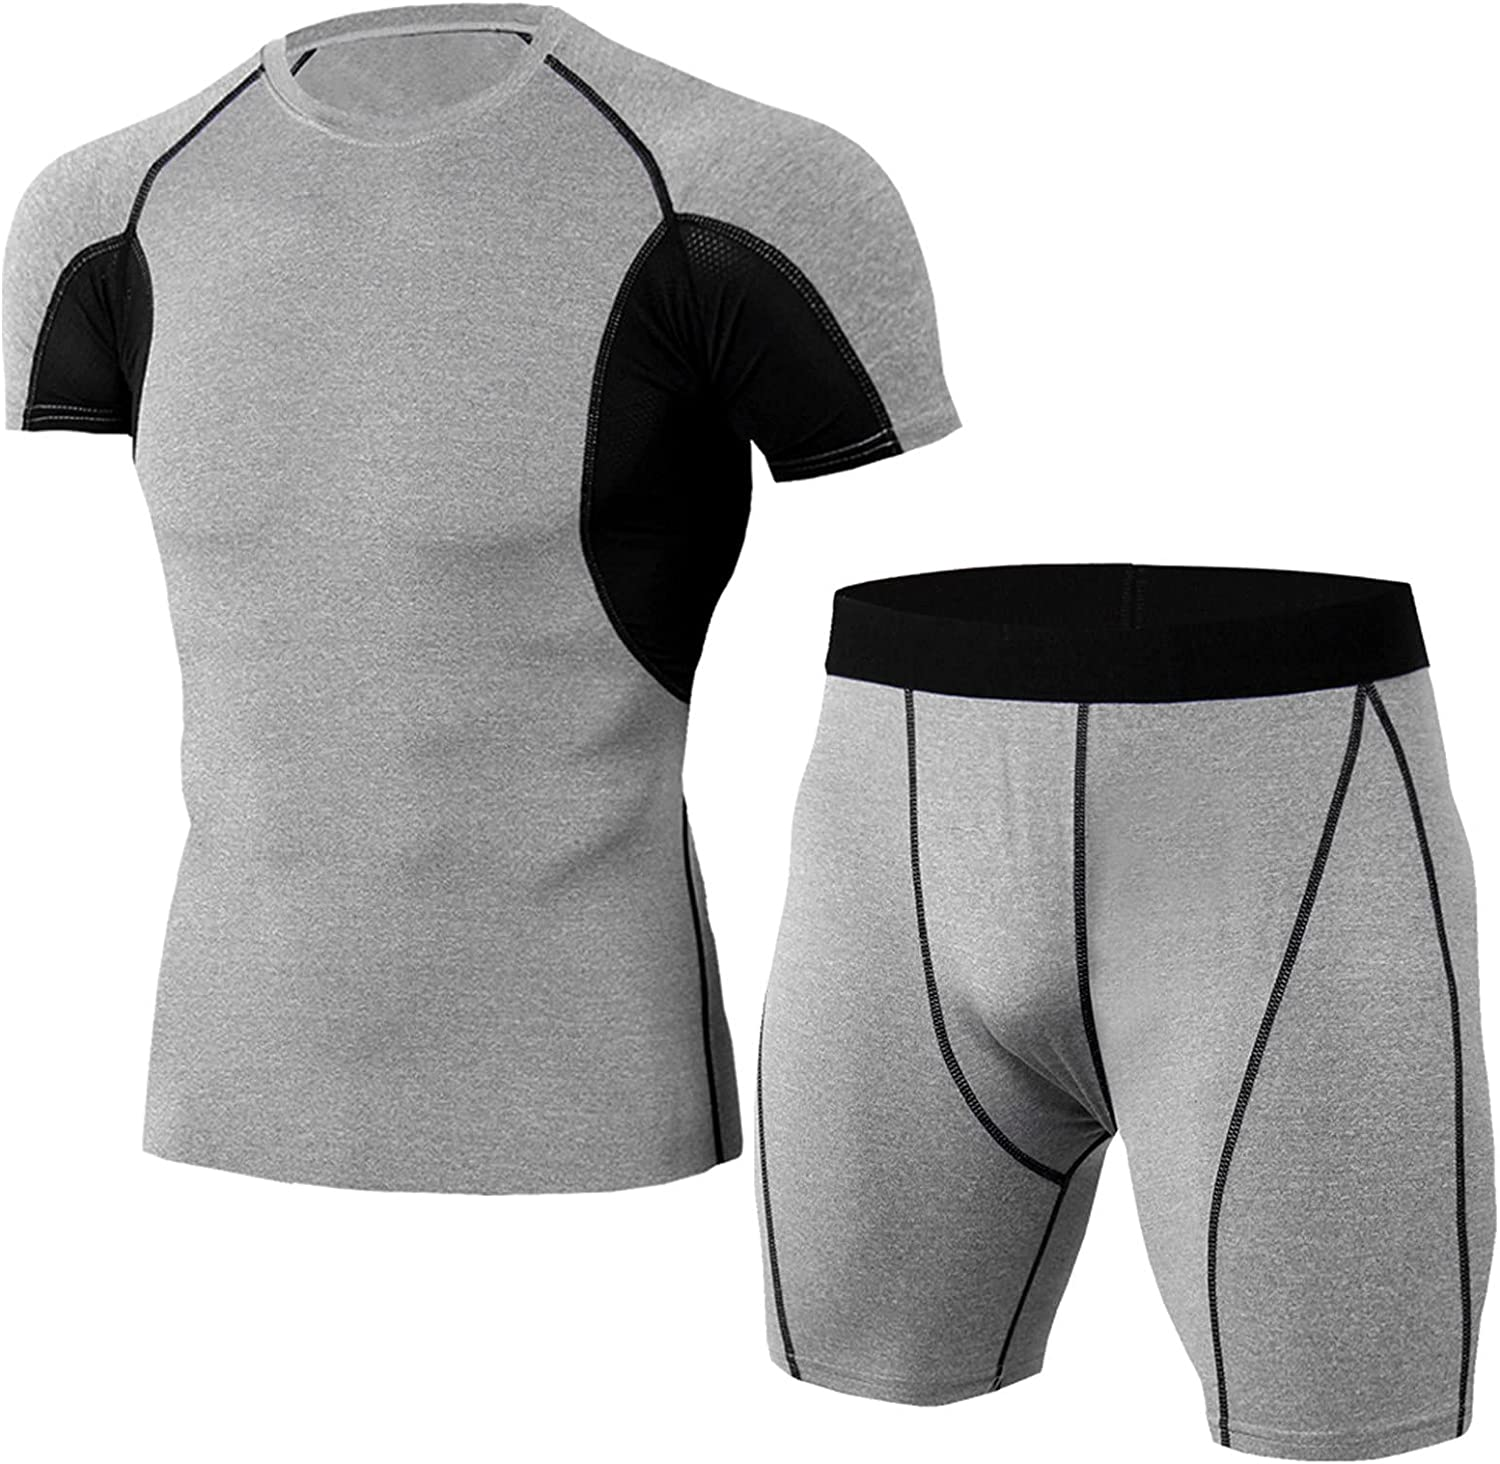 Men's Tracksuit Athletic Sports Rompers Tight Elastic Quick-Drying Fitness T-Shirt Short Sleeve Shorts Set 2 Piece